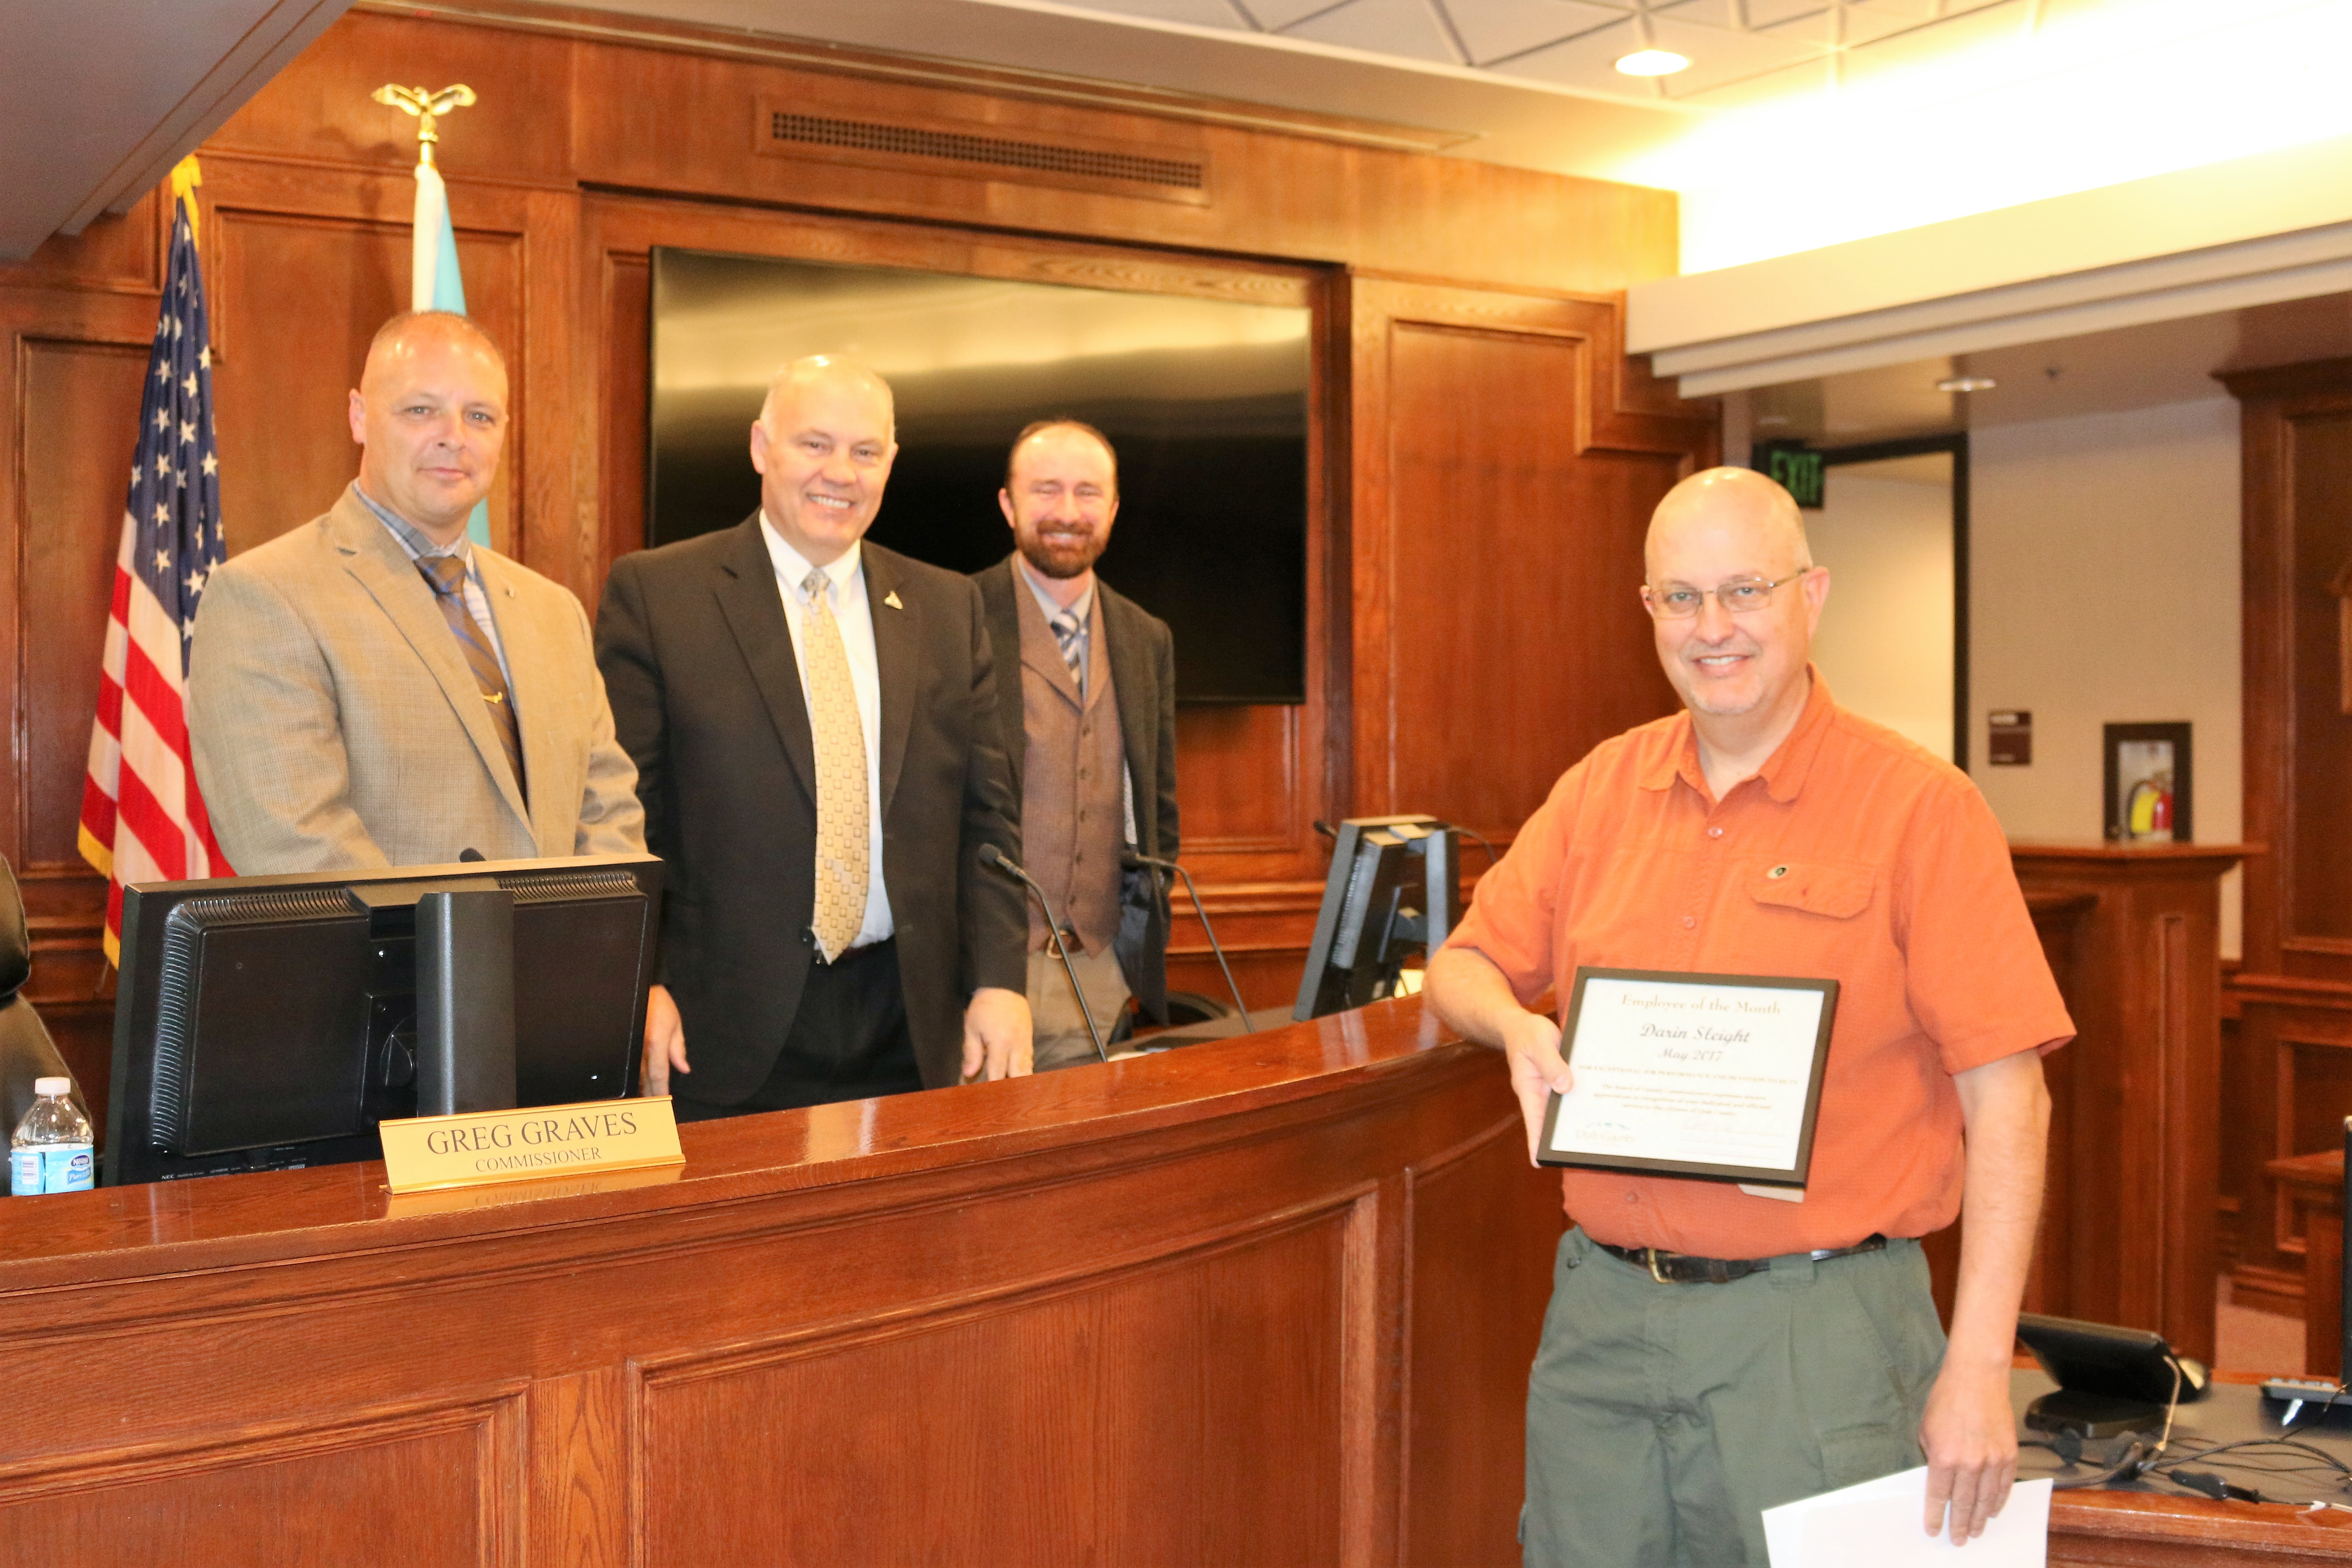 Utah County Employee of the Month Photograph (Click on image for larger photo)